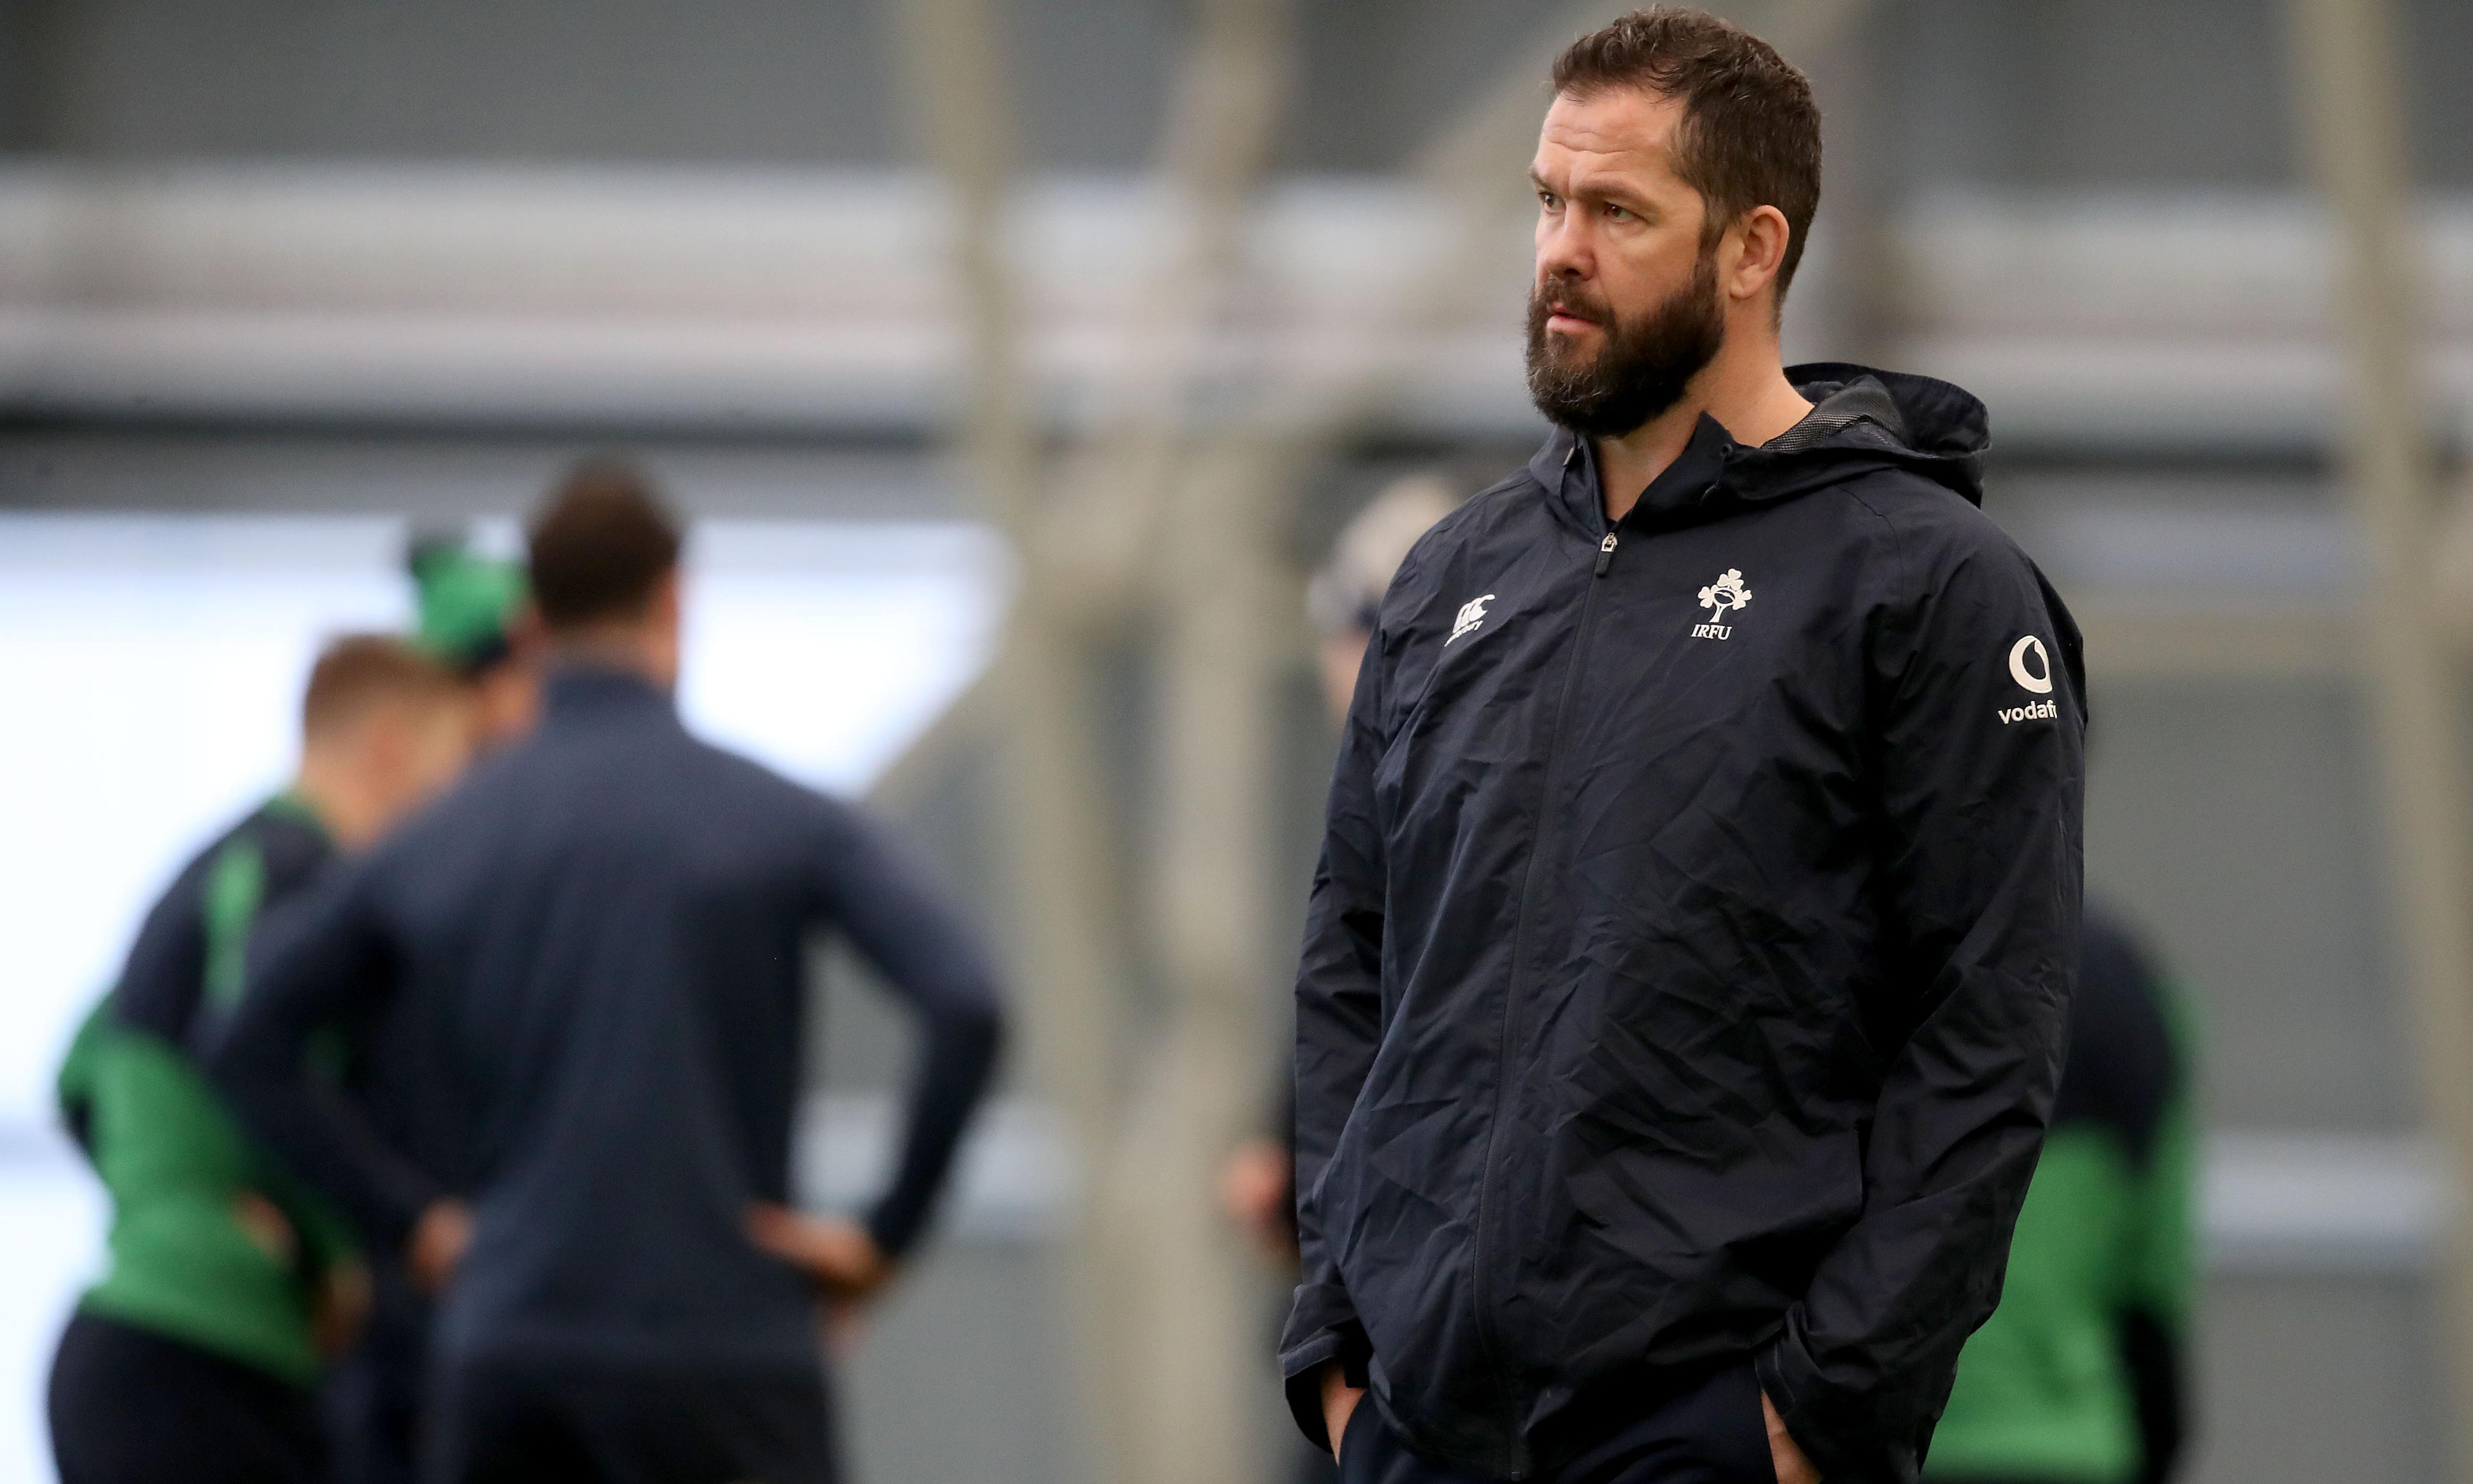 Ireland appear revitalised by Andy Farrell's subtle tweaks to their system